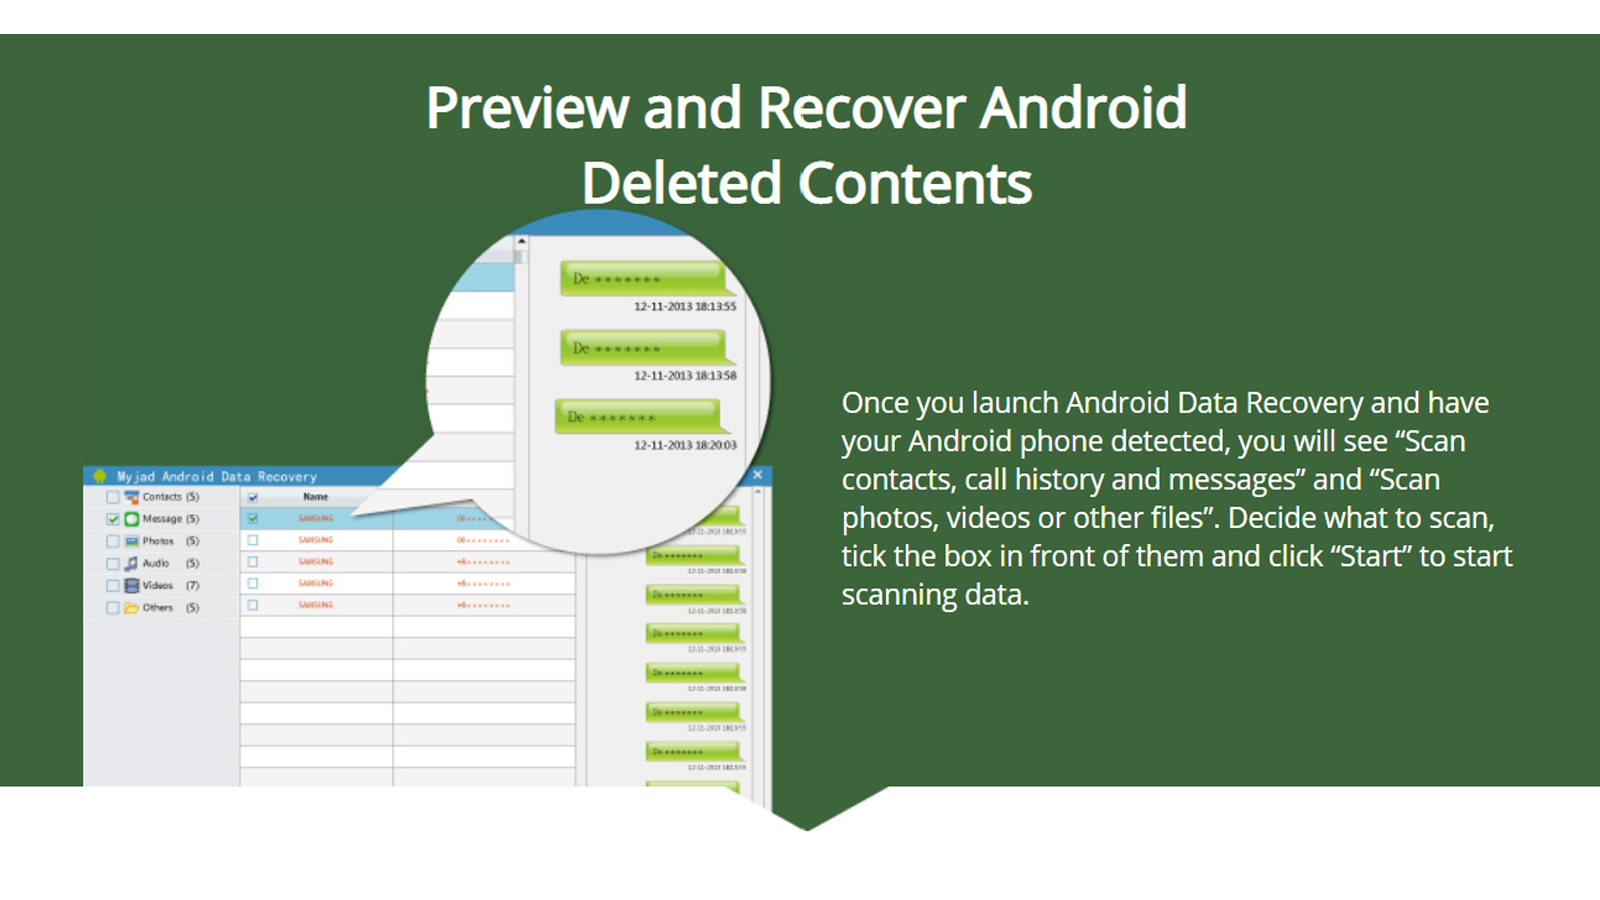 MyJad Android Data Recovery app can recover data and save a copy to your desktop